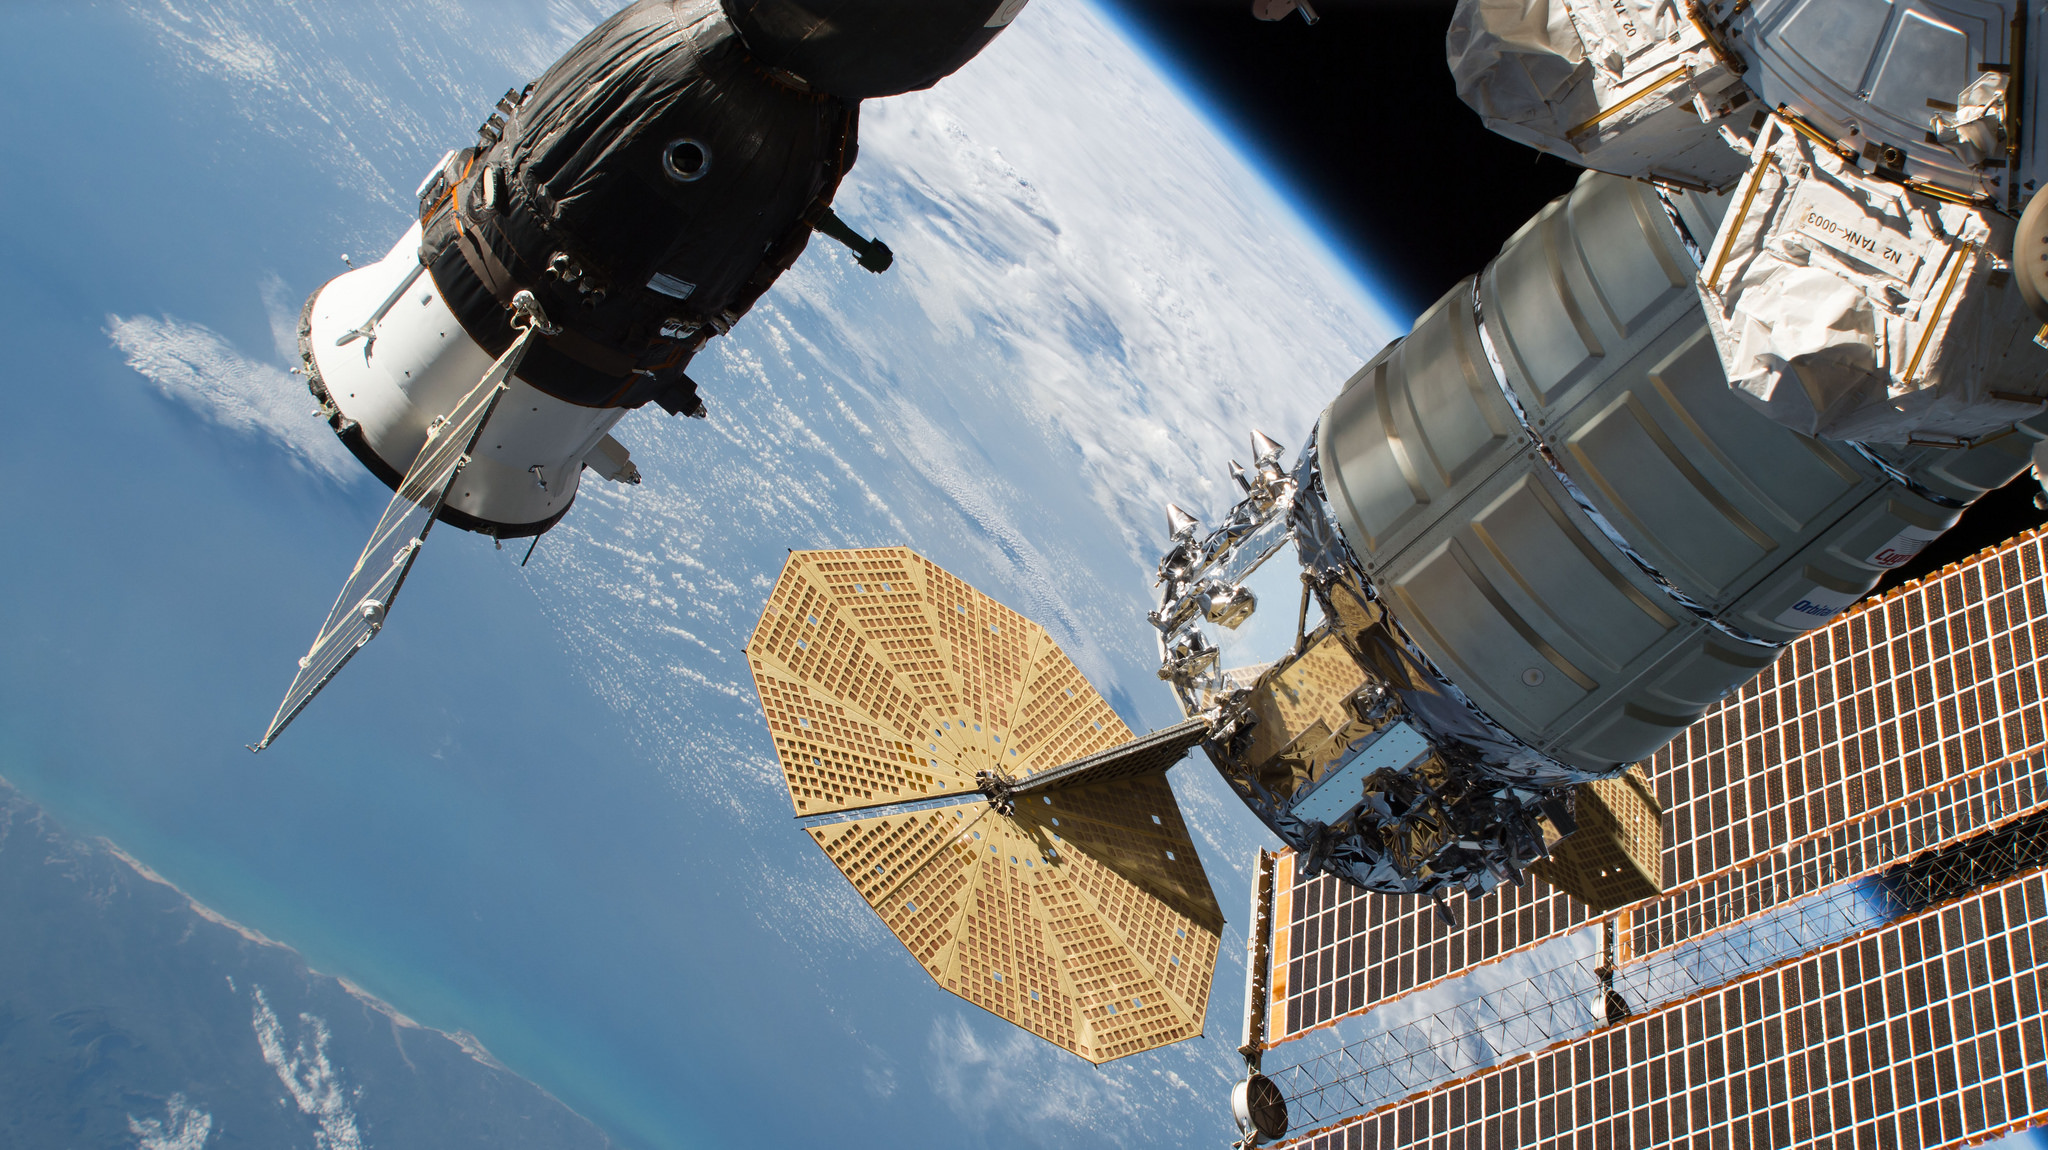 A view of the OA-9 Cygnus with Soyuz MS-09 docked in the background. Credit: NASA